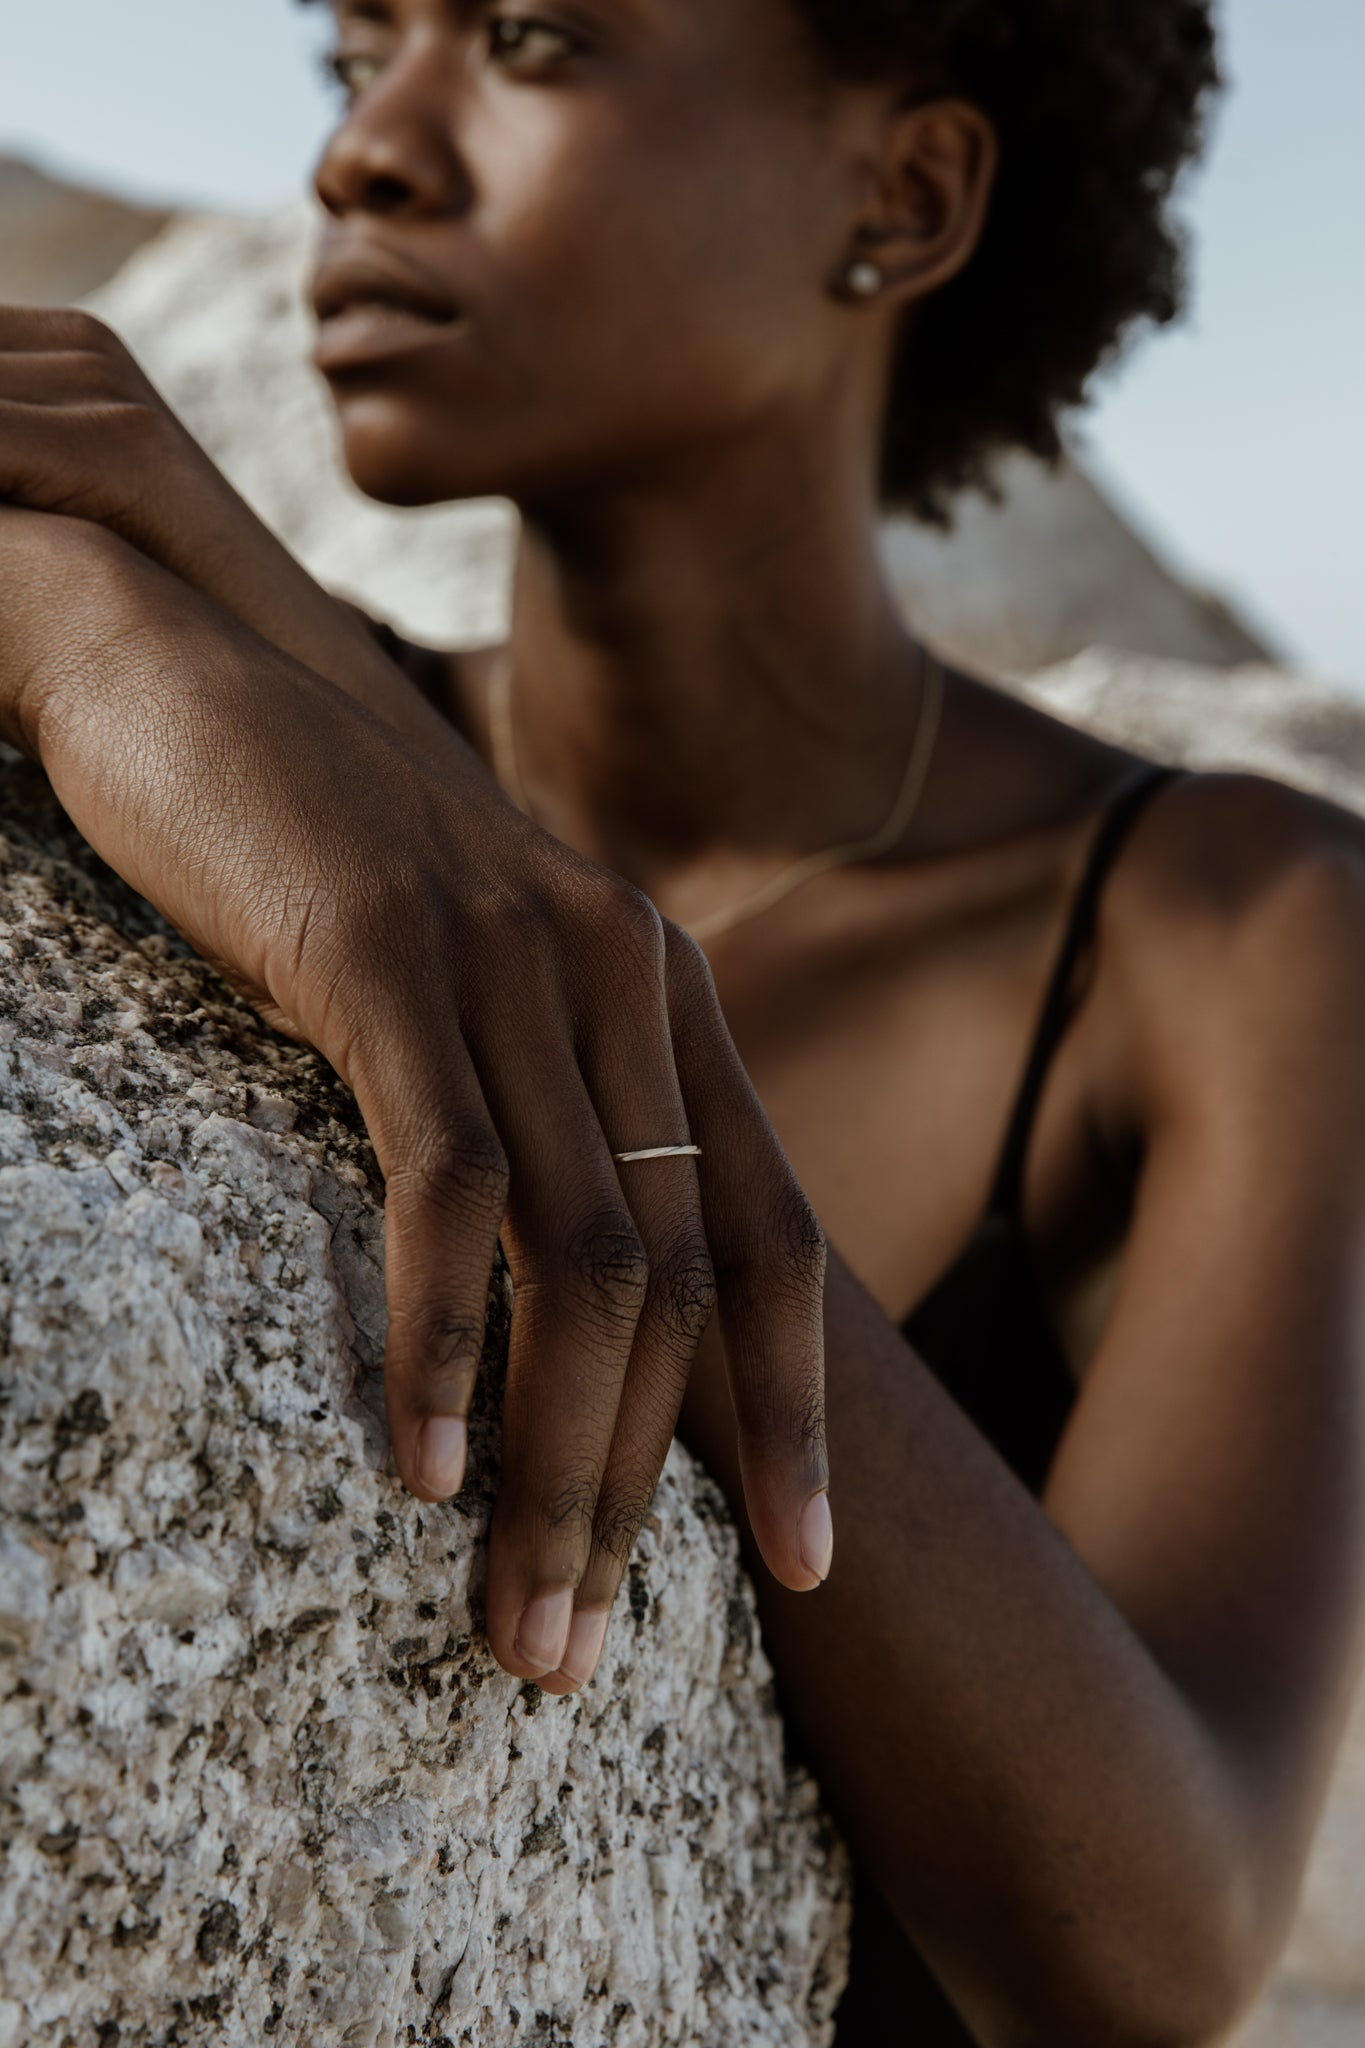 Silver and gold eco-friendly, sustainable jewellery handmade from recycled e-waste